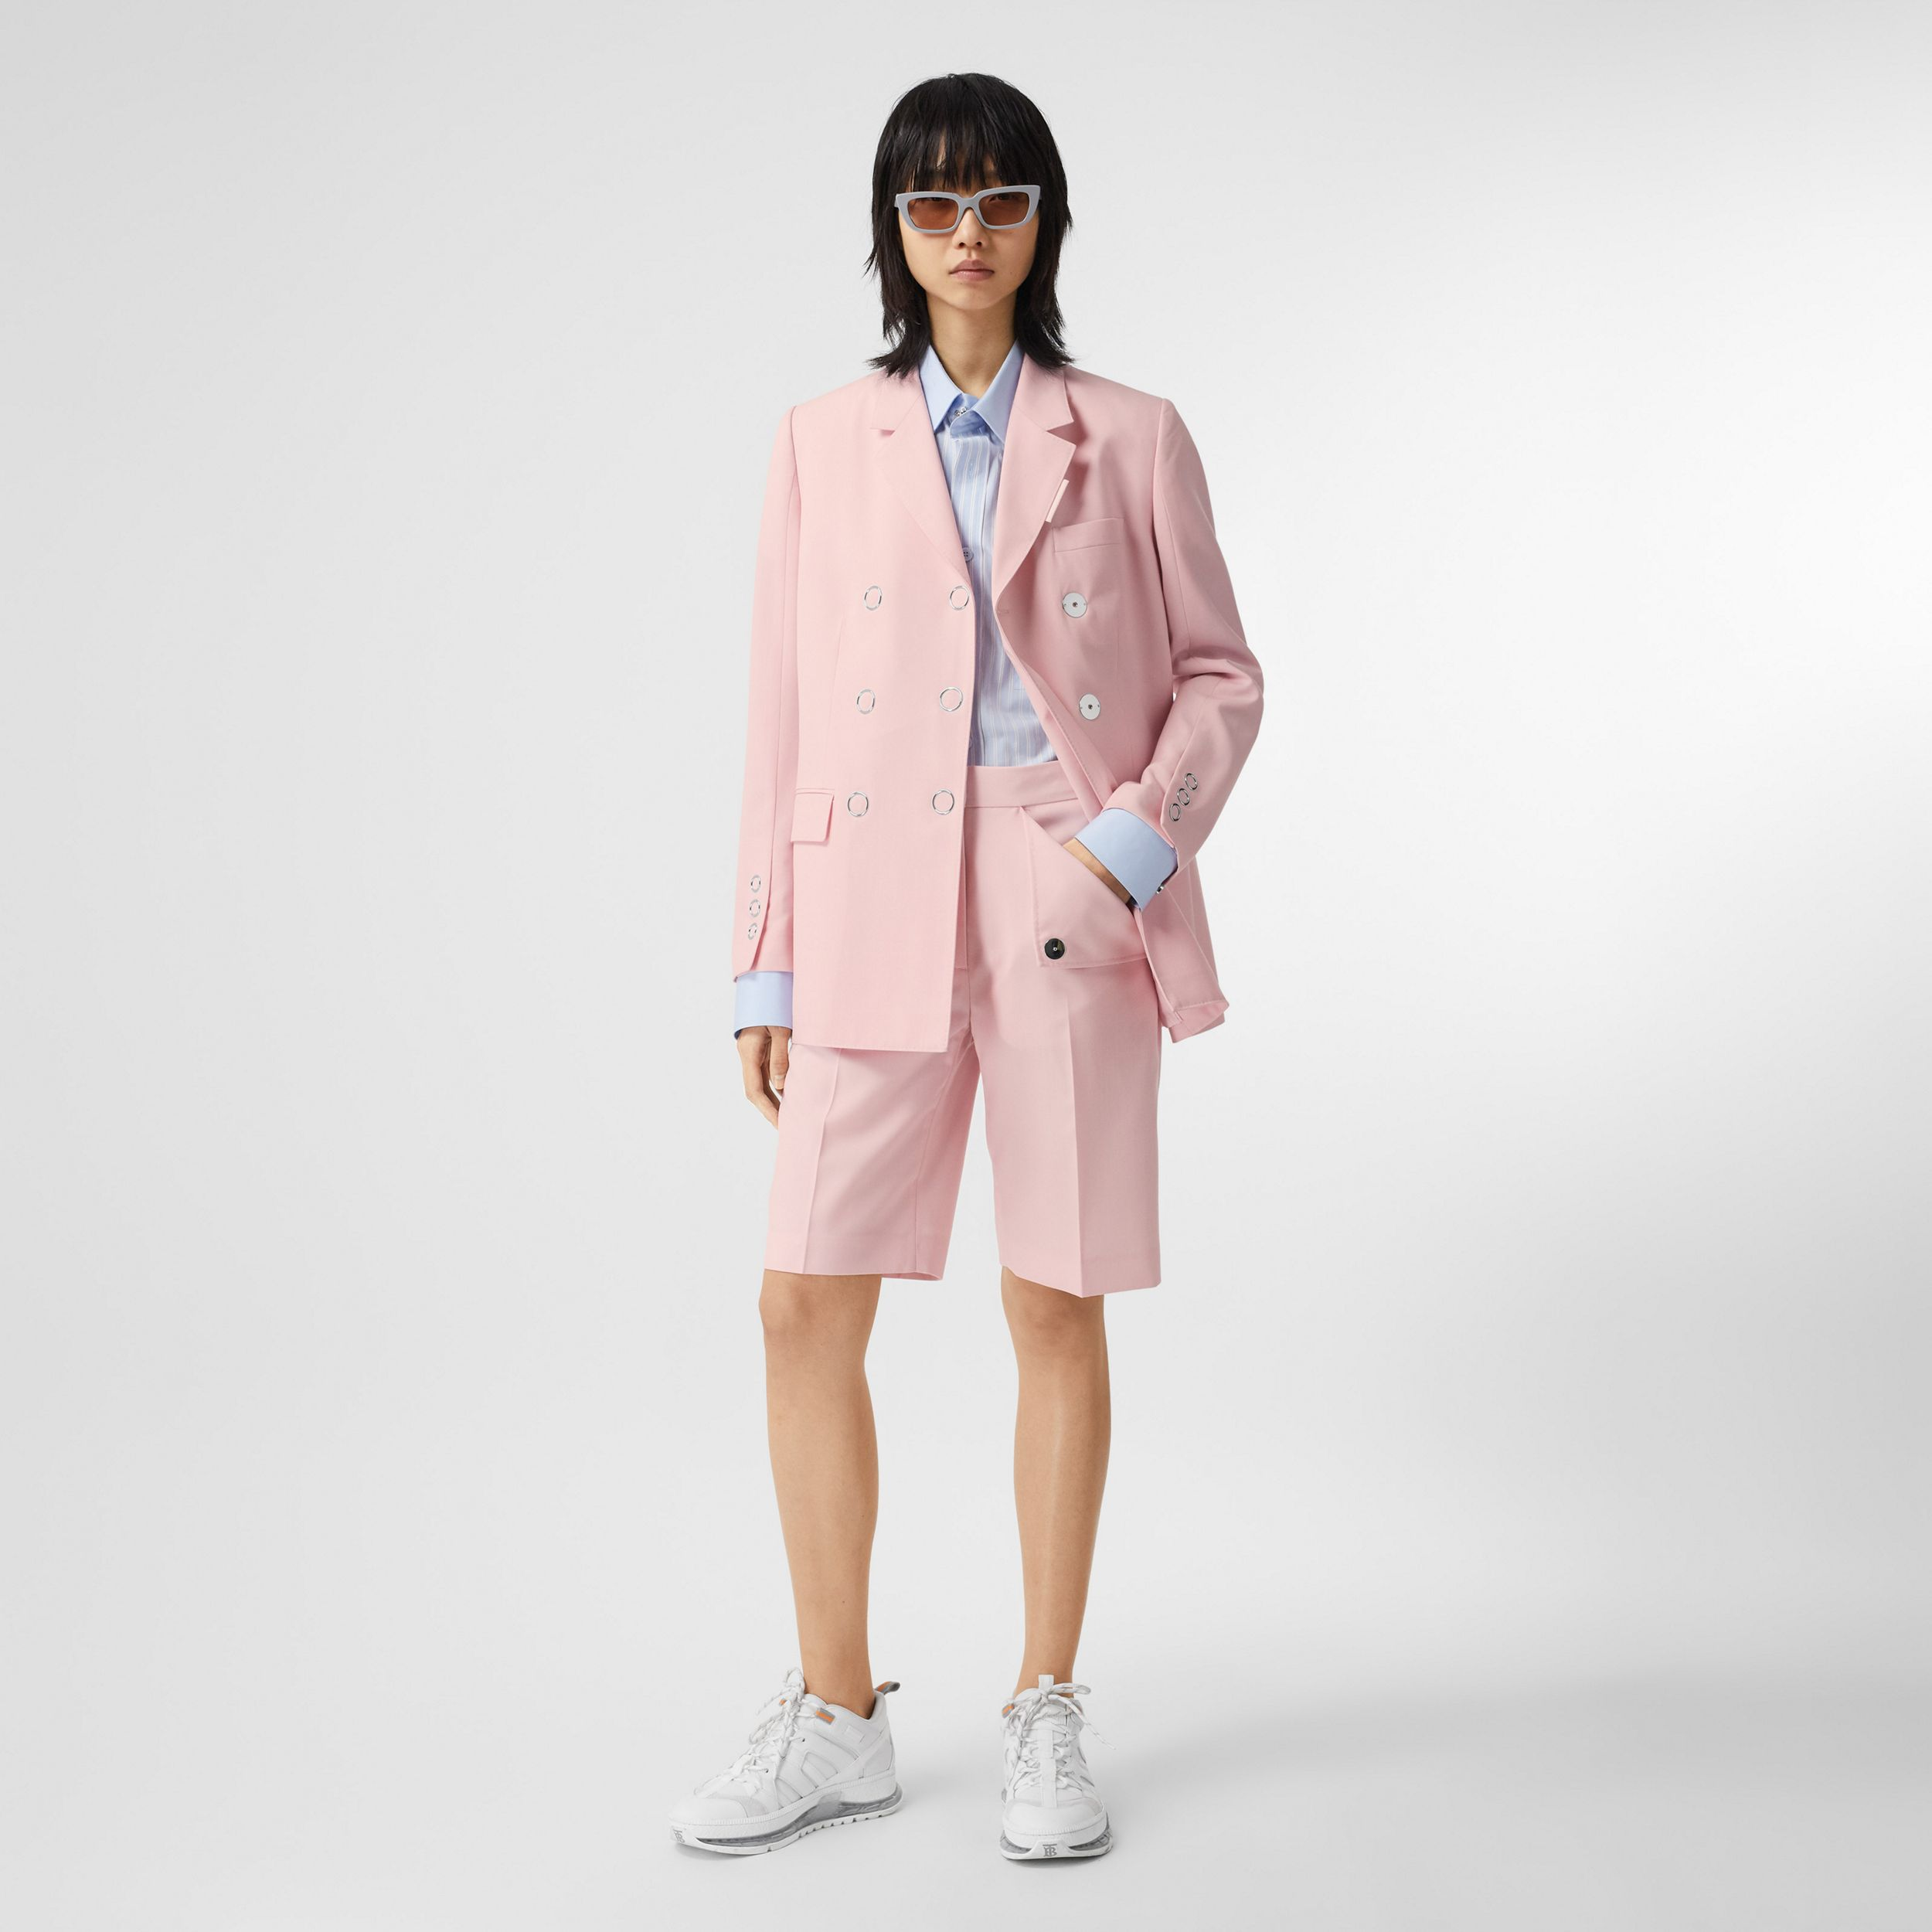 Tumbled Wool Double-breasted Blazer in Soft Pink - Women | Burberry - 1